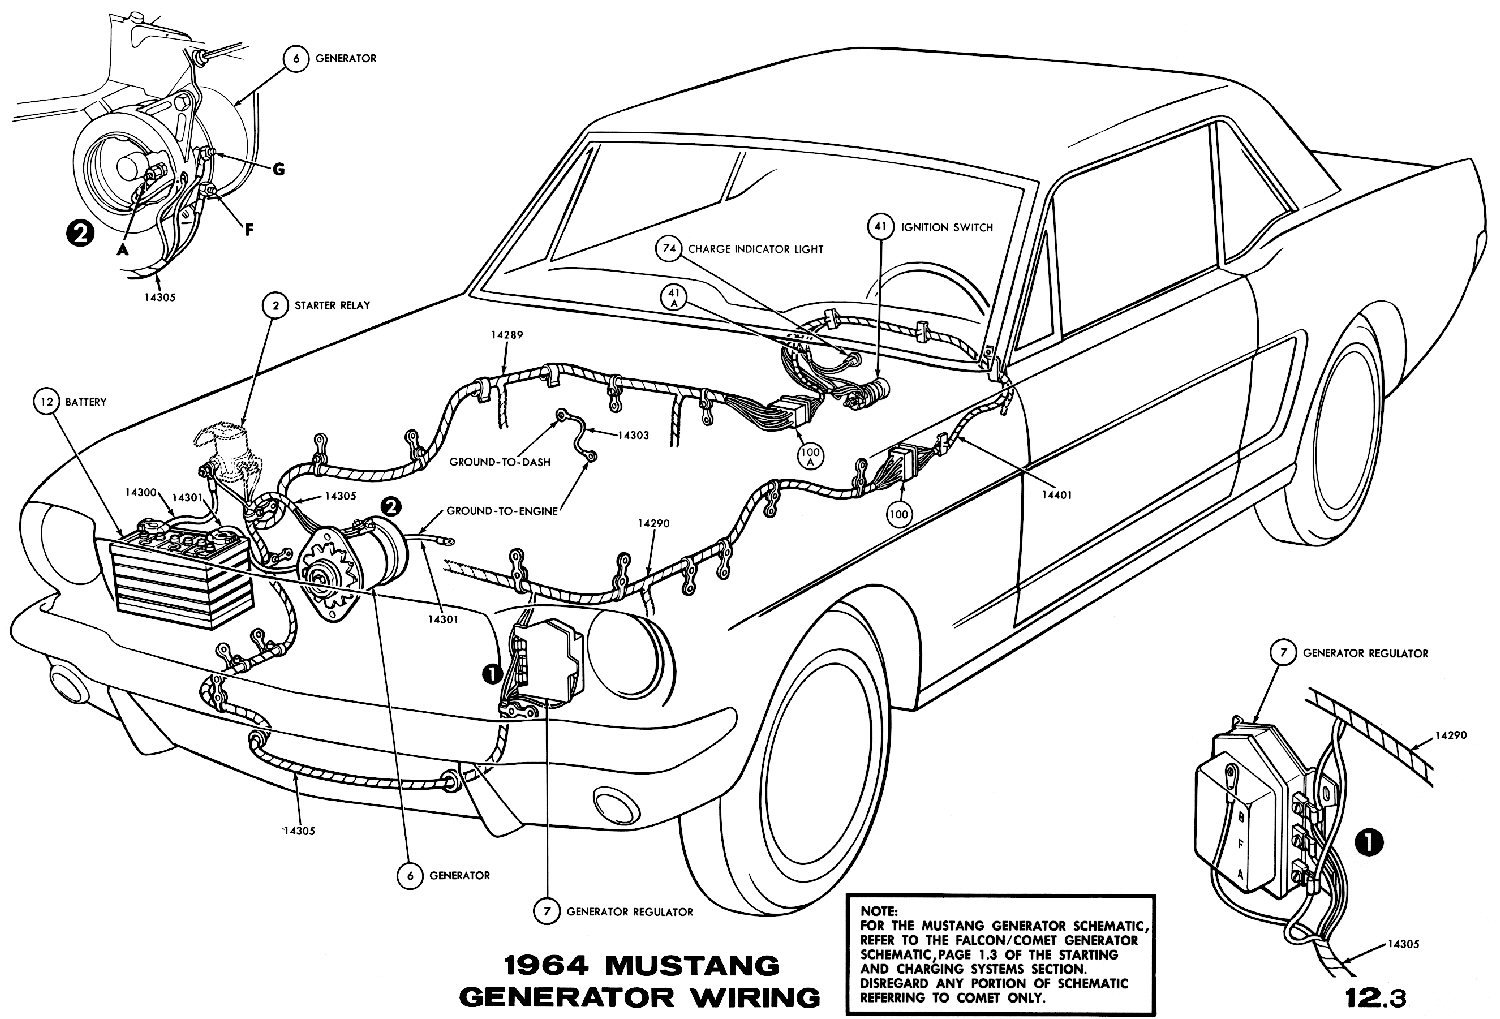 1964 mustang wiring diagrams average joe restoration sm1964f 1964 mustang generator wiring